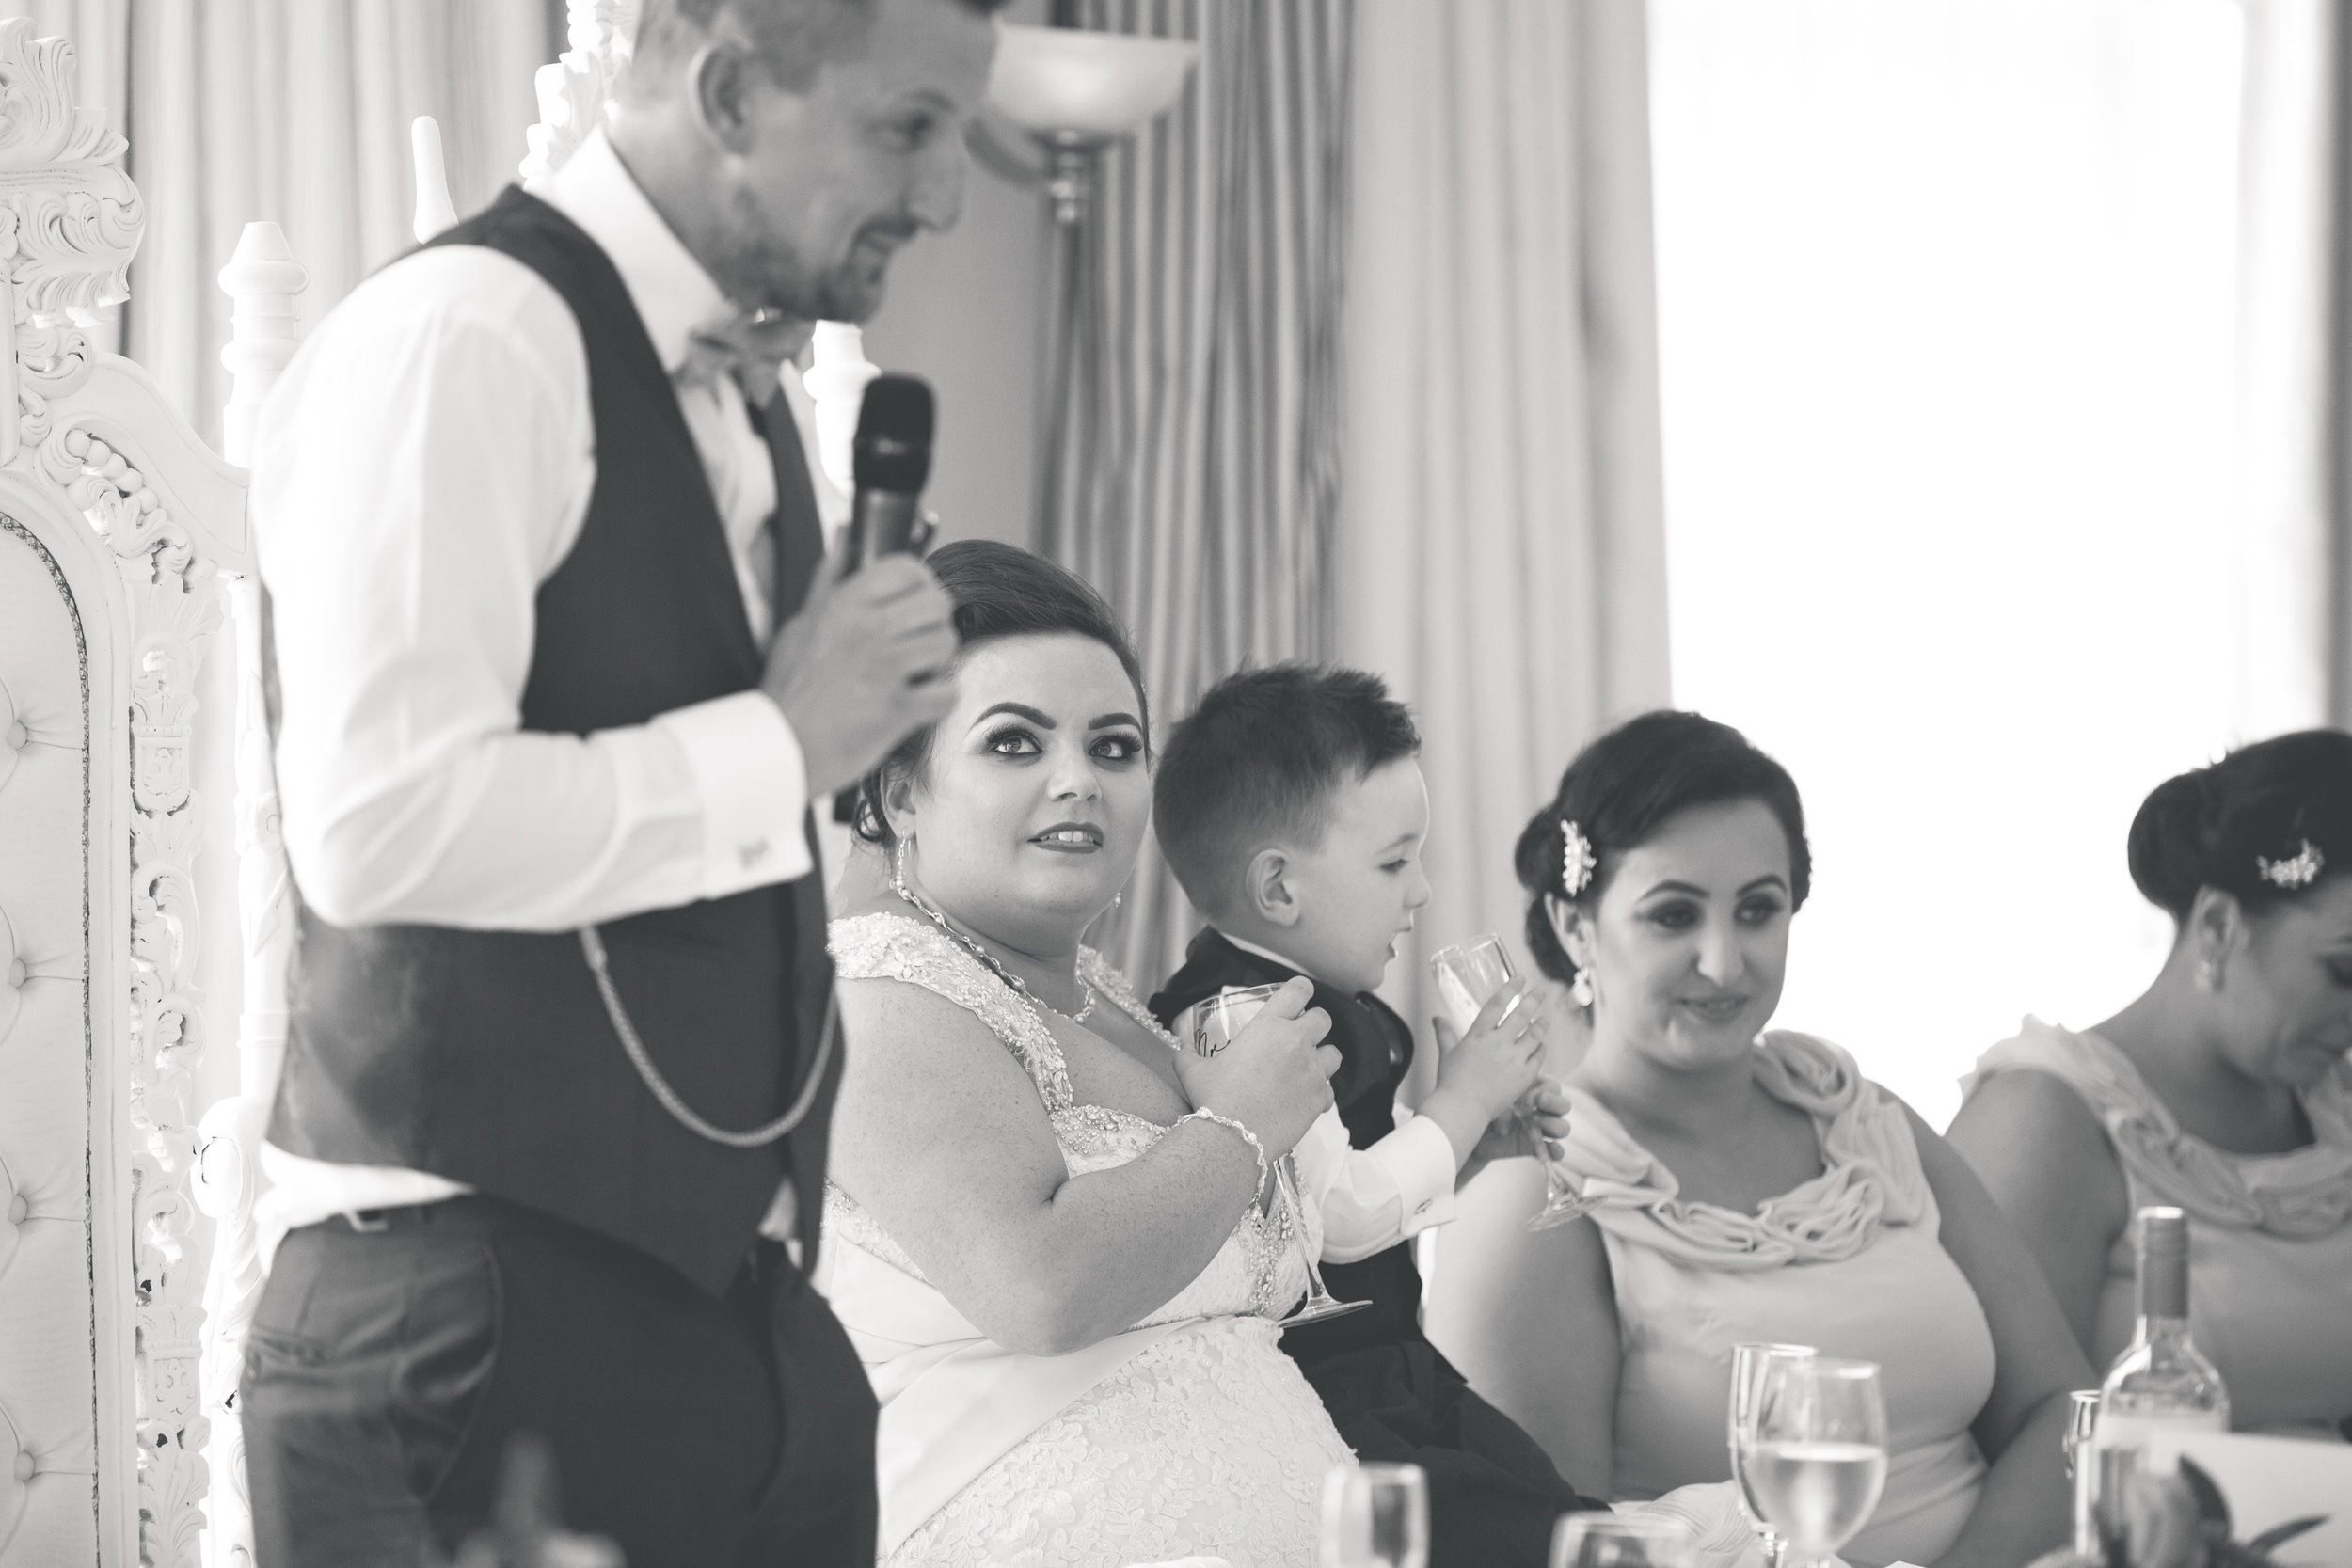 Antoinette & Stephen - Speeches | Brian McEwan Photography | Wedding Photographer Northern Ireland 82.jpg